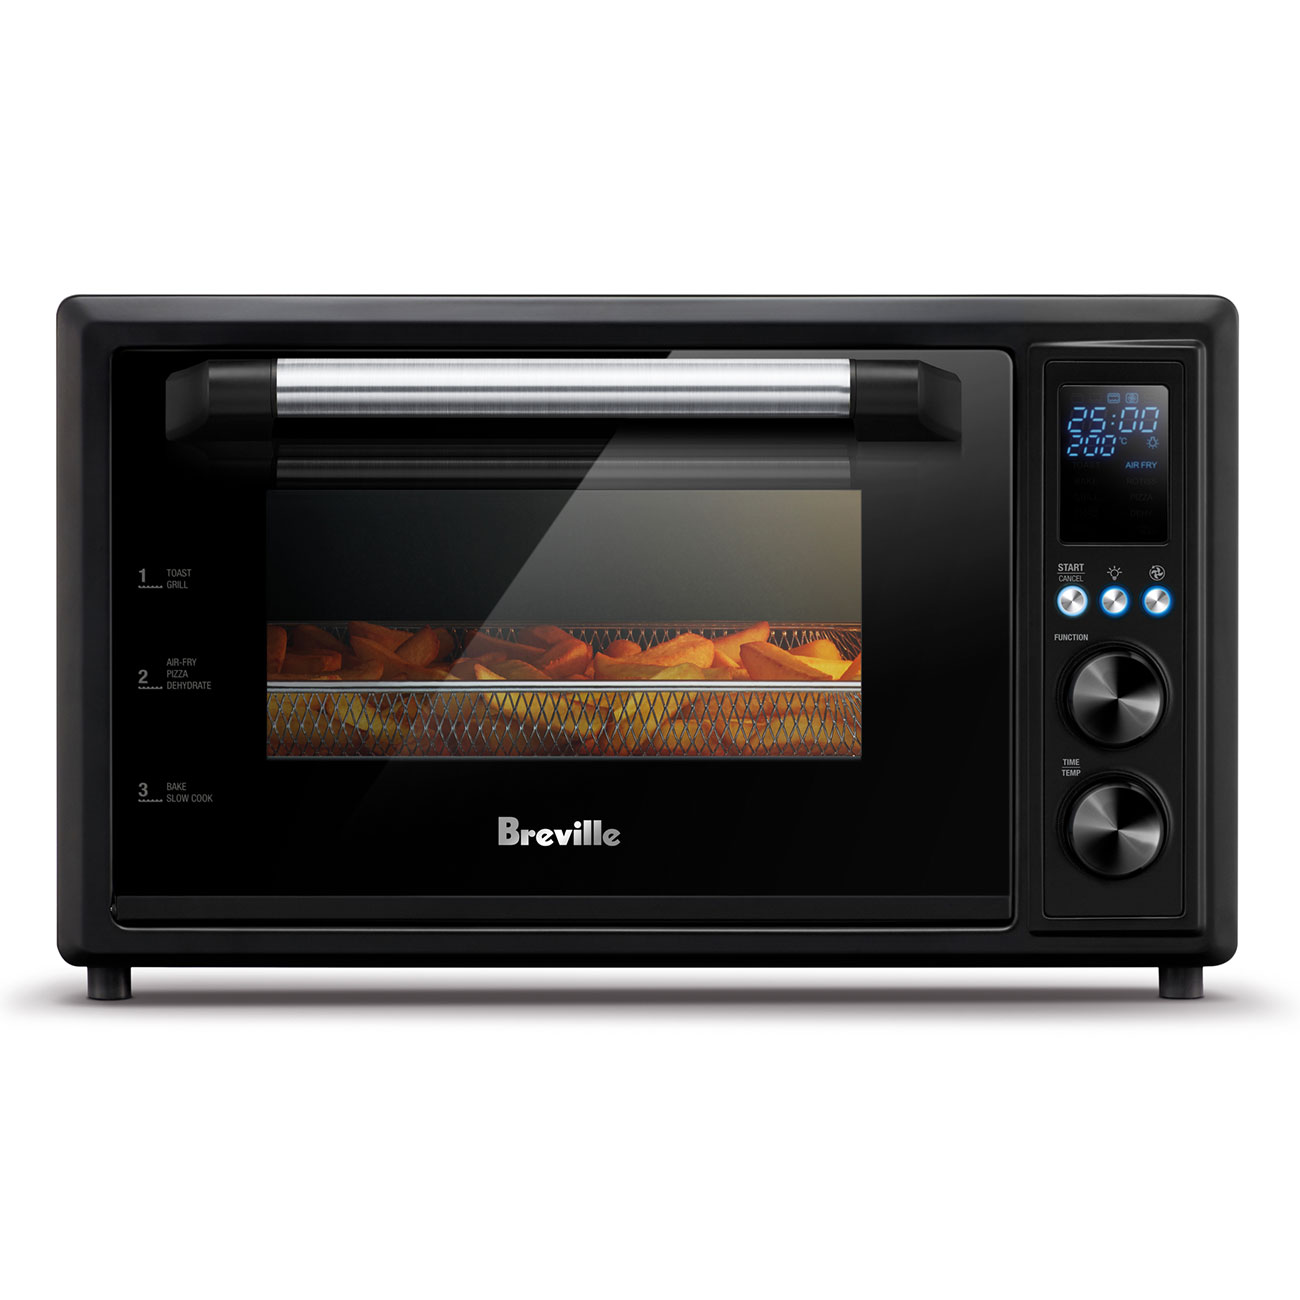 the Multi Oven Air Fryer Oven \u2022 Breville